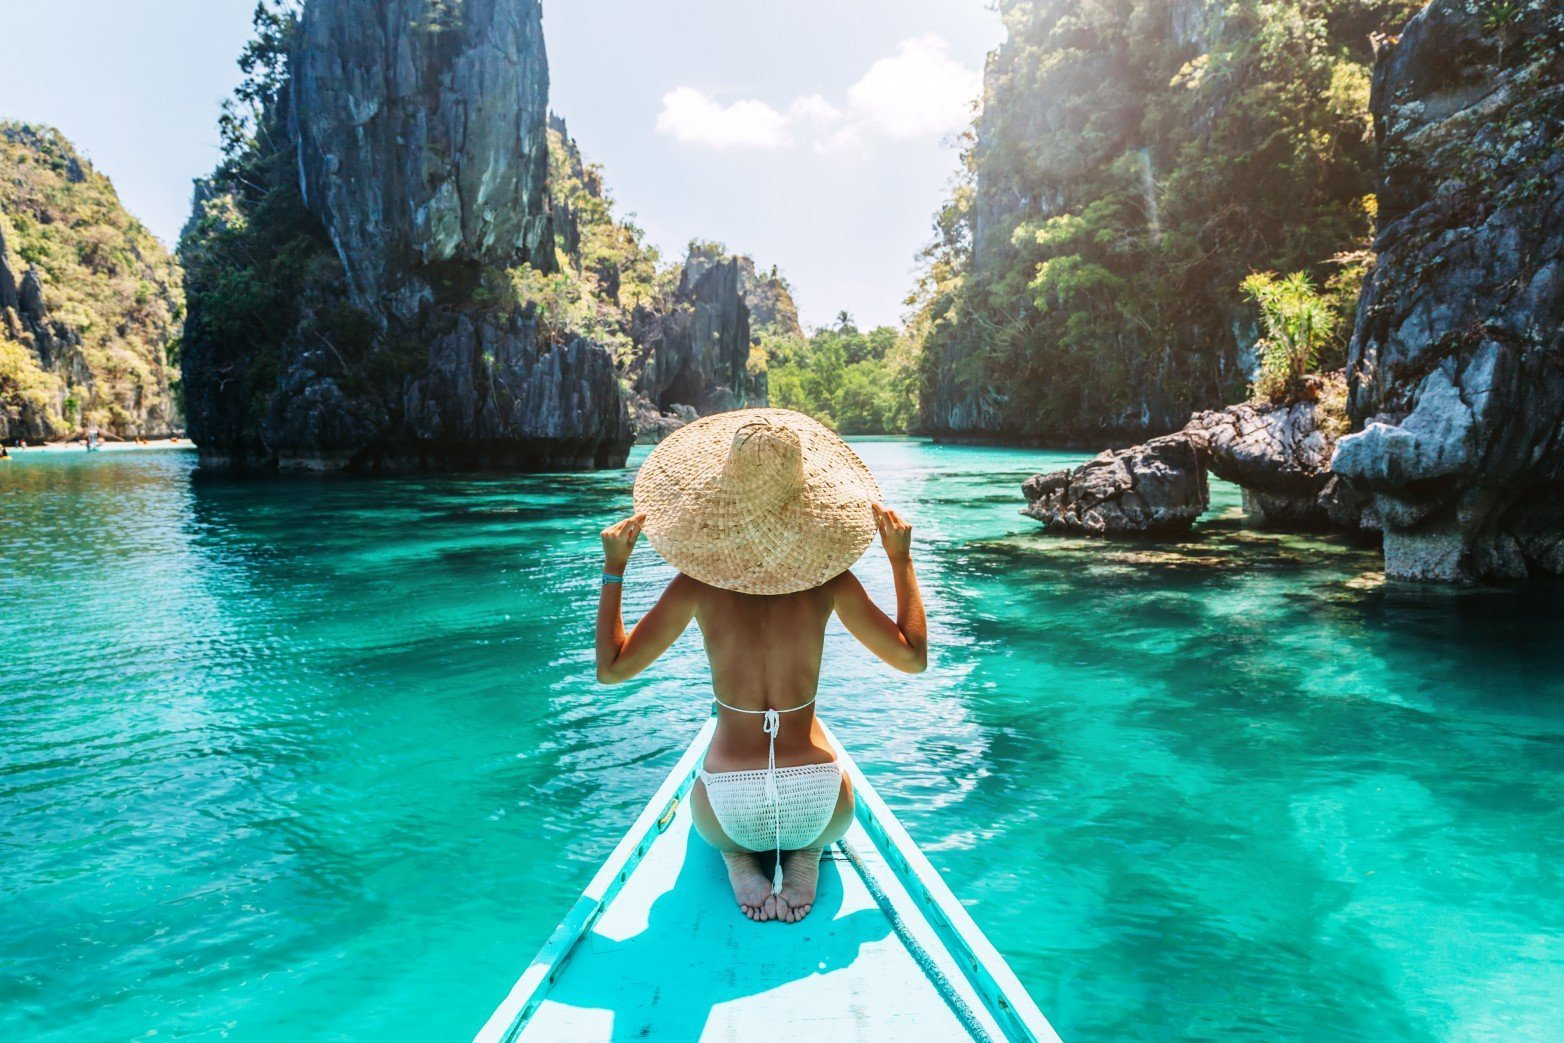 Lady-in-straw-hat-in-canoe-in-tropical-water